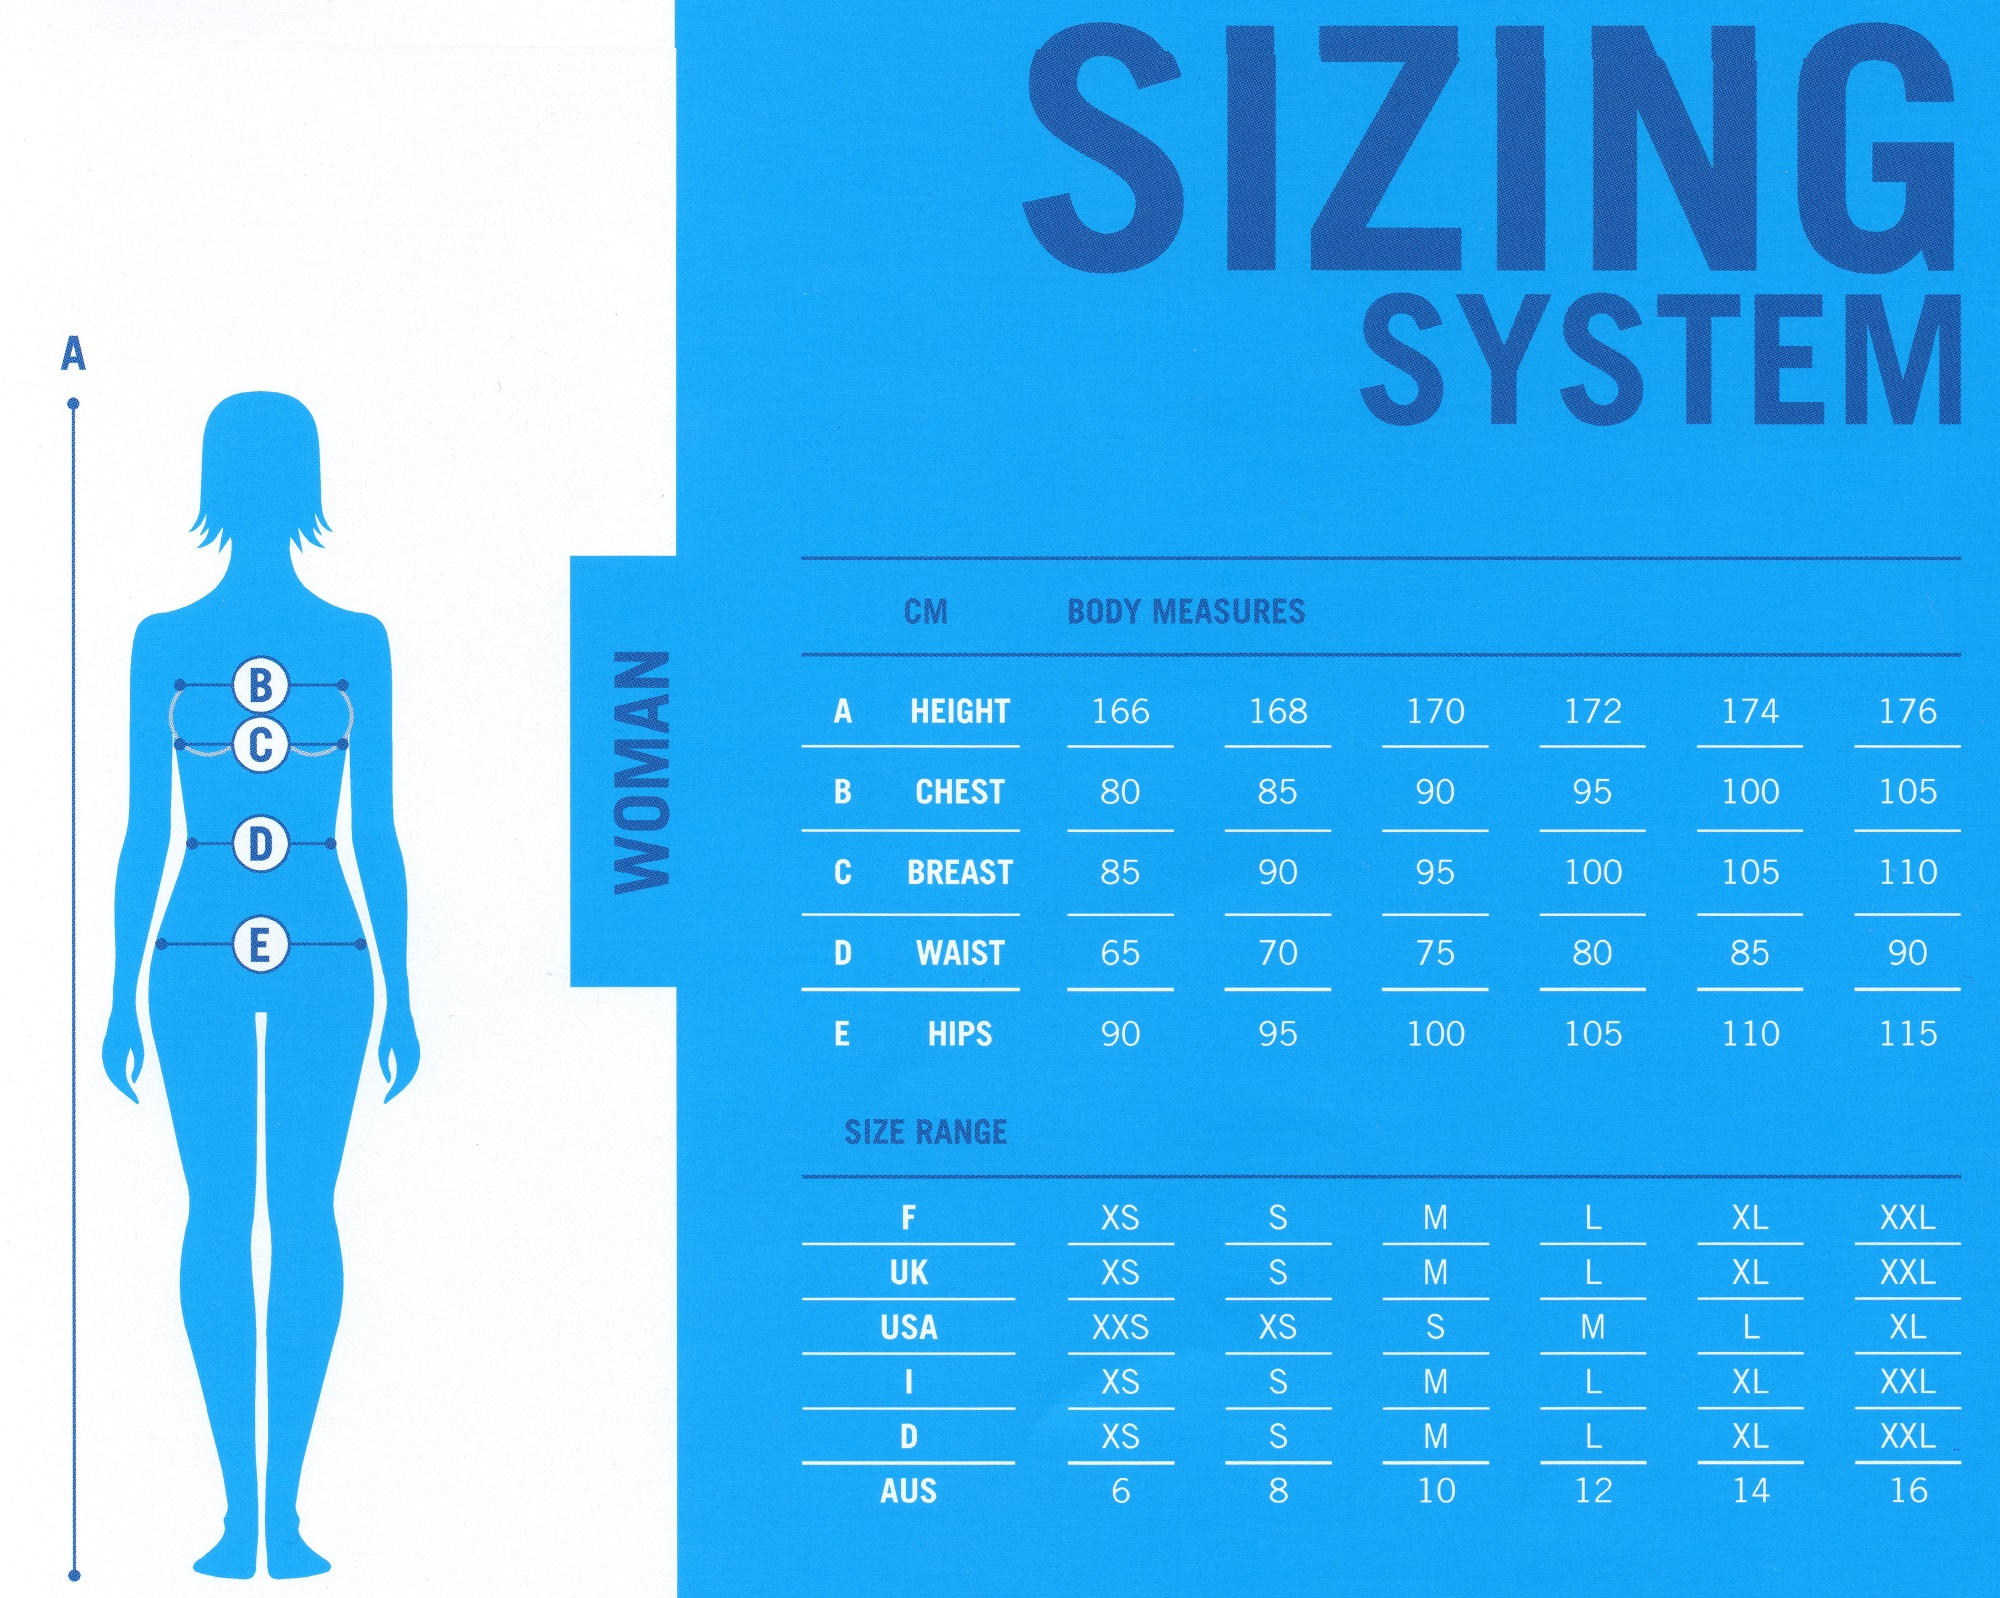 ARENA-SIZING-SYSTEM-WOMAN2.jpg